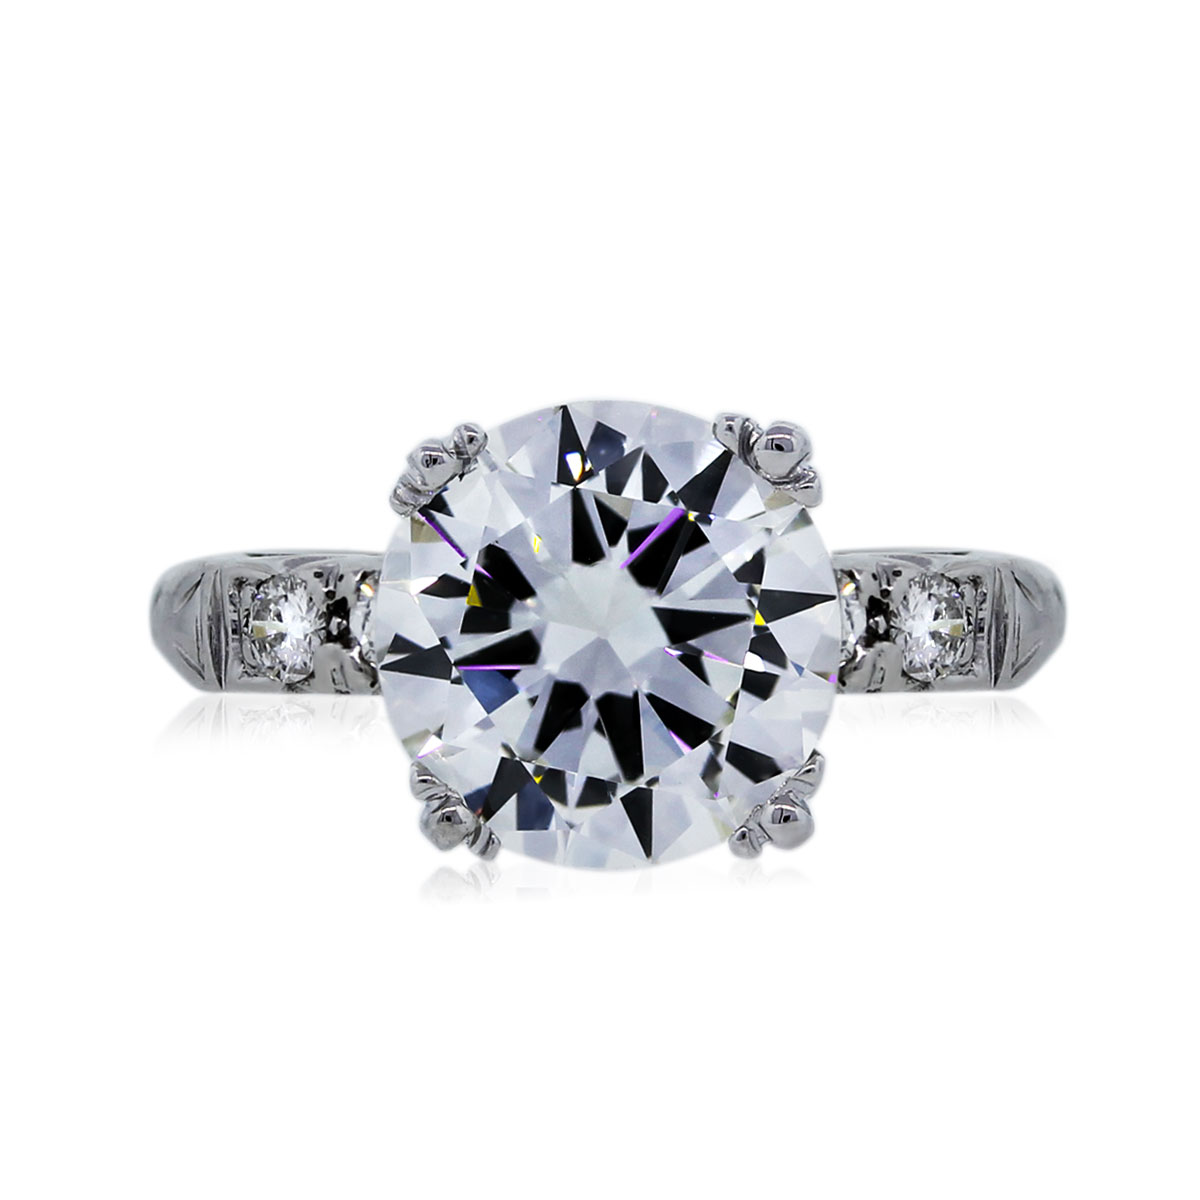 You are Viewing this 2.74ct Round Brilliant Diamond Engagement Ring!